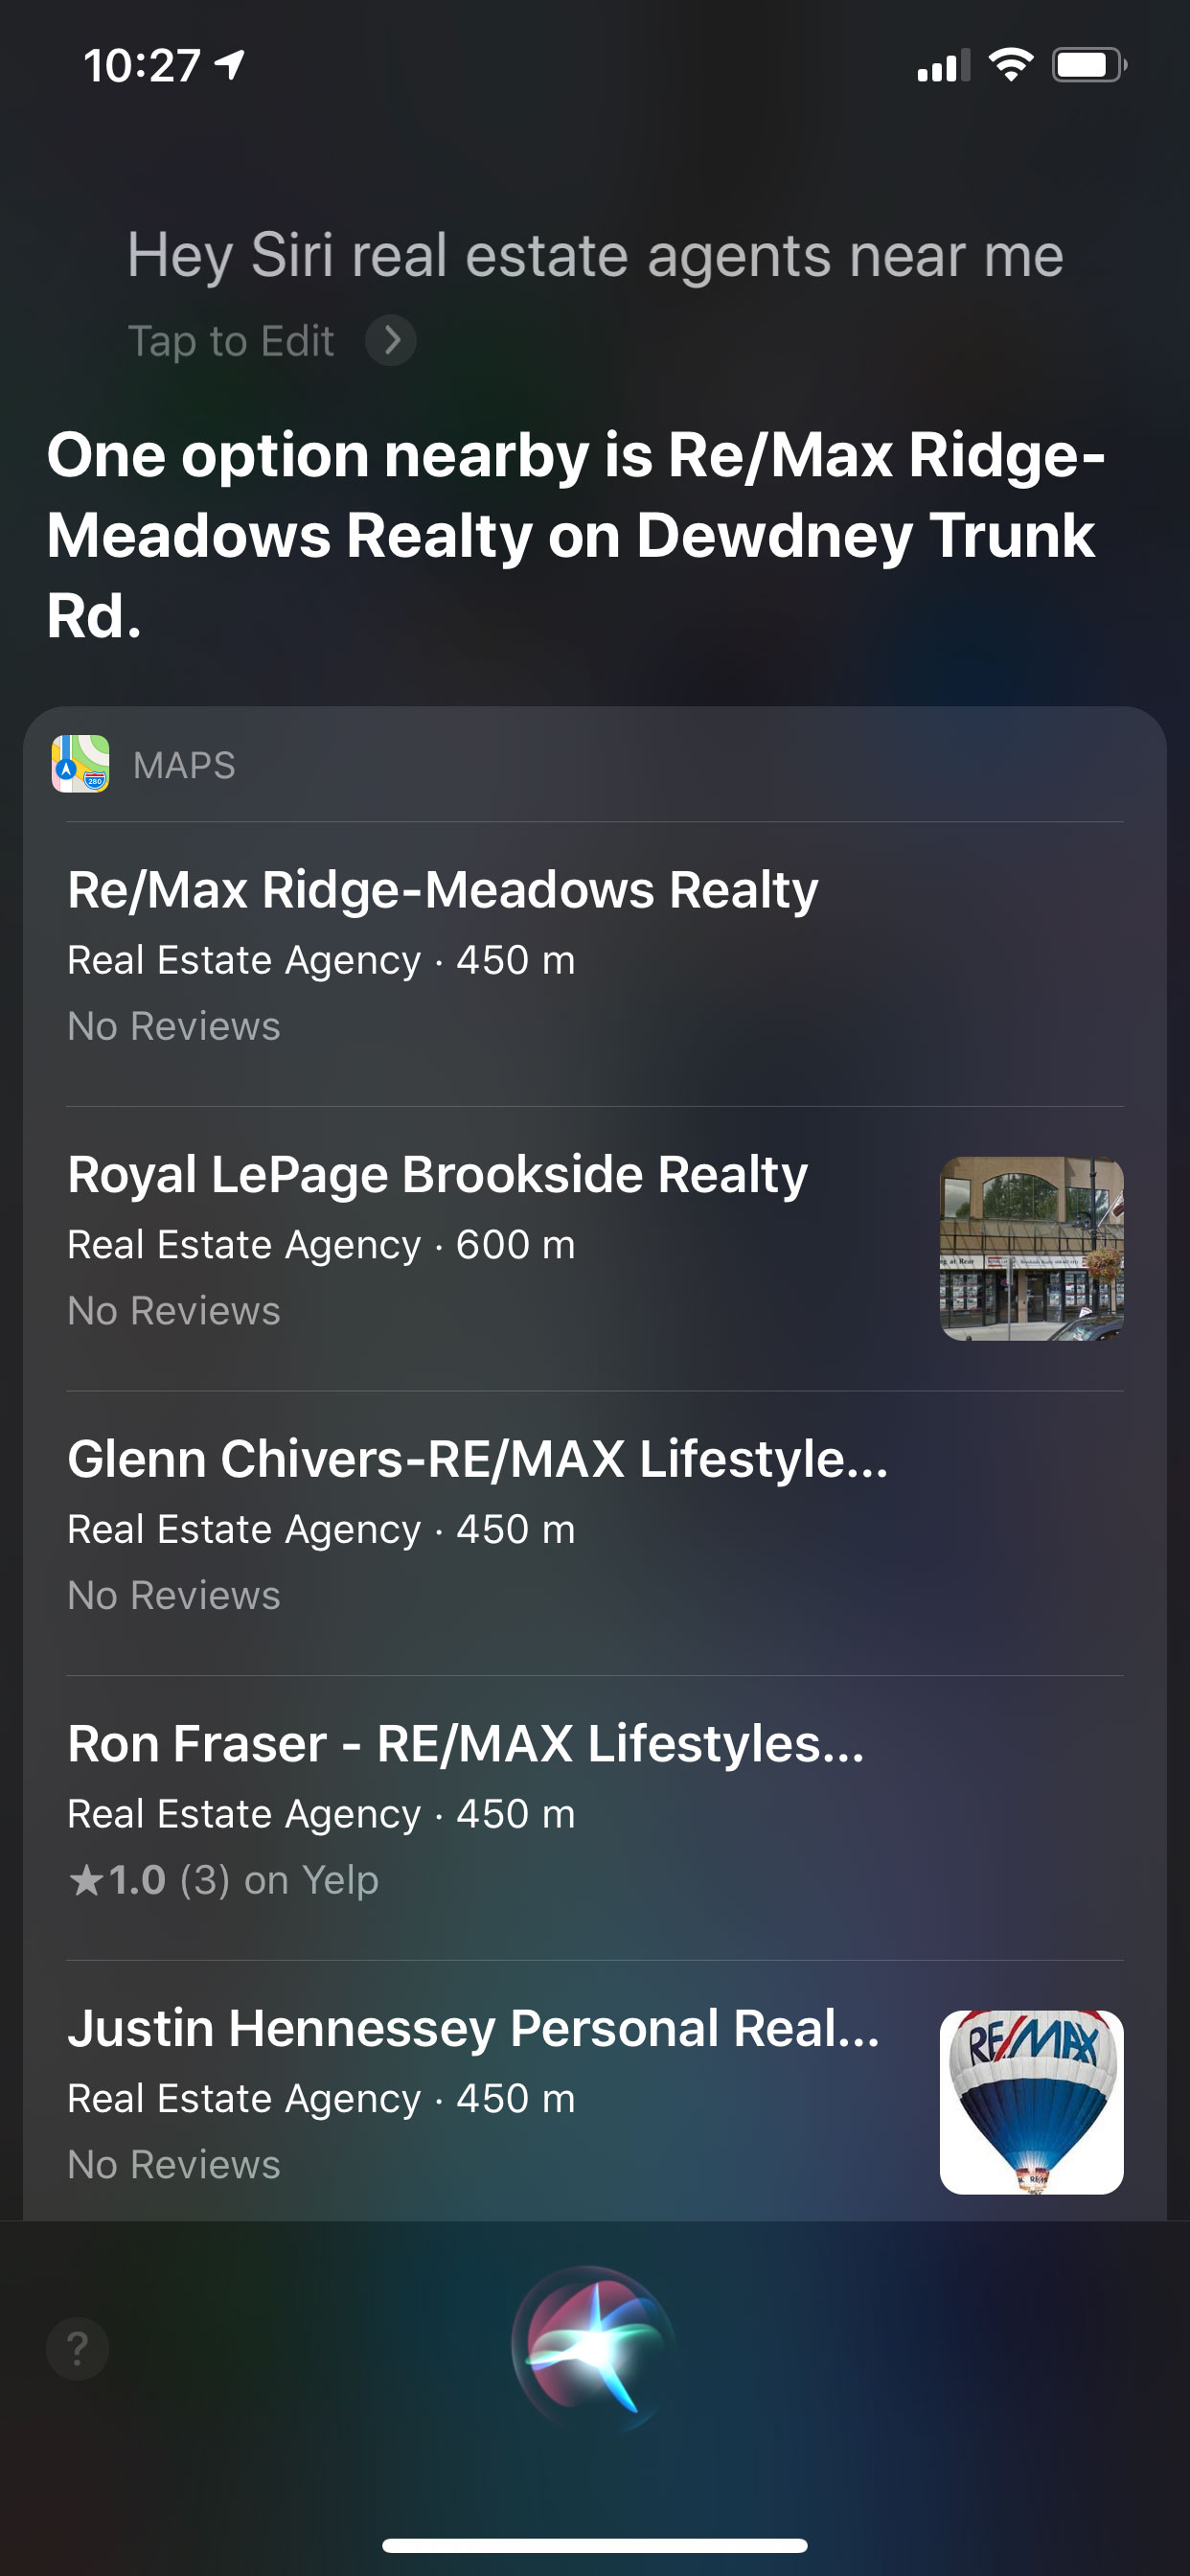 Voice Search - Real Estate Agents Near Me